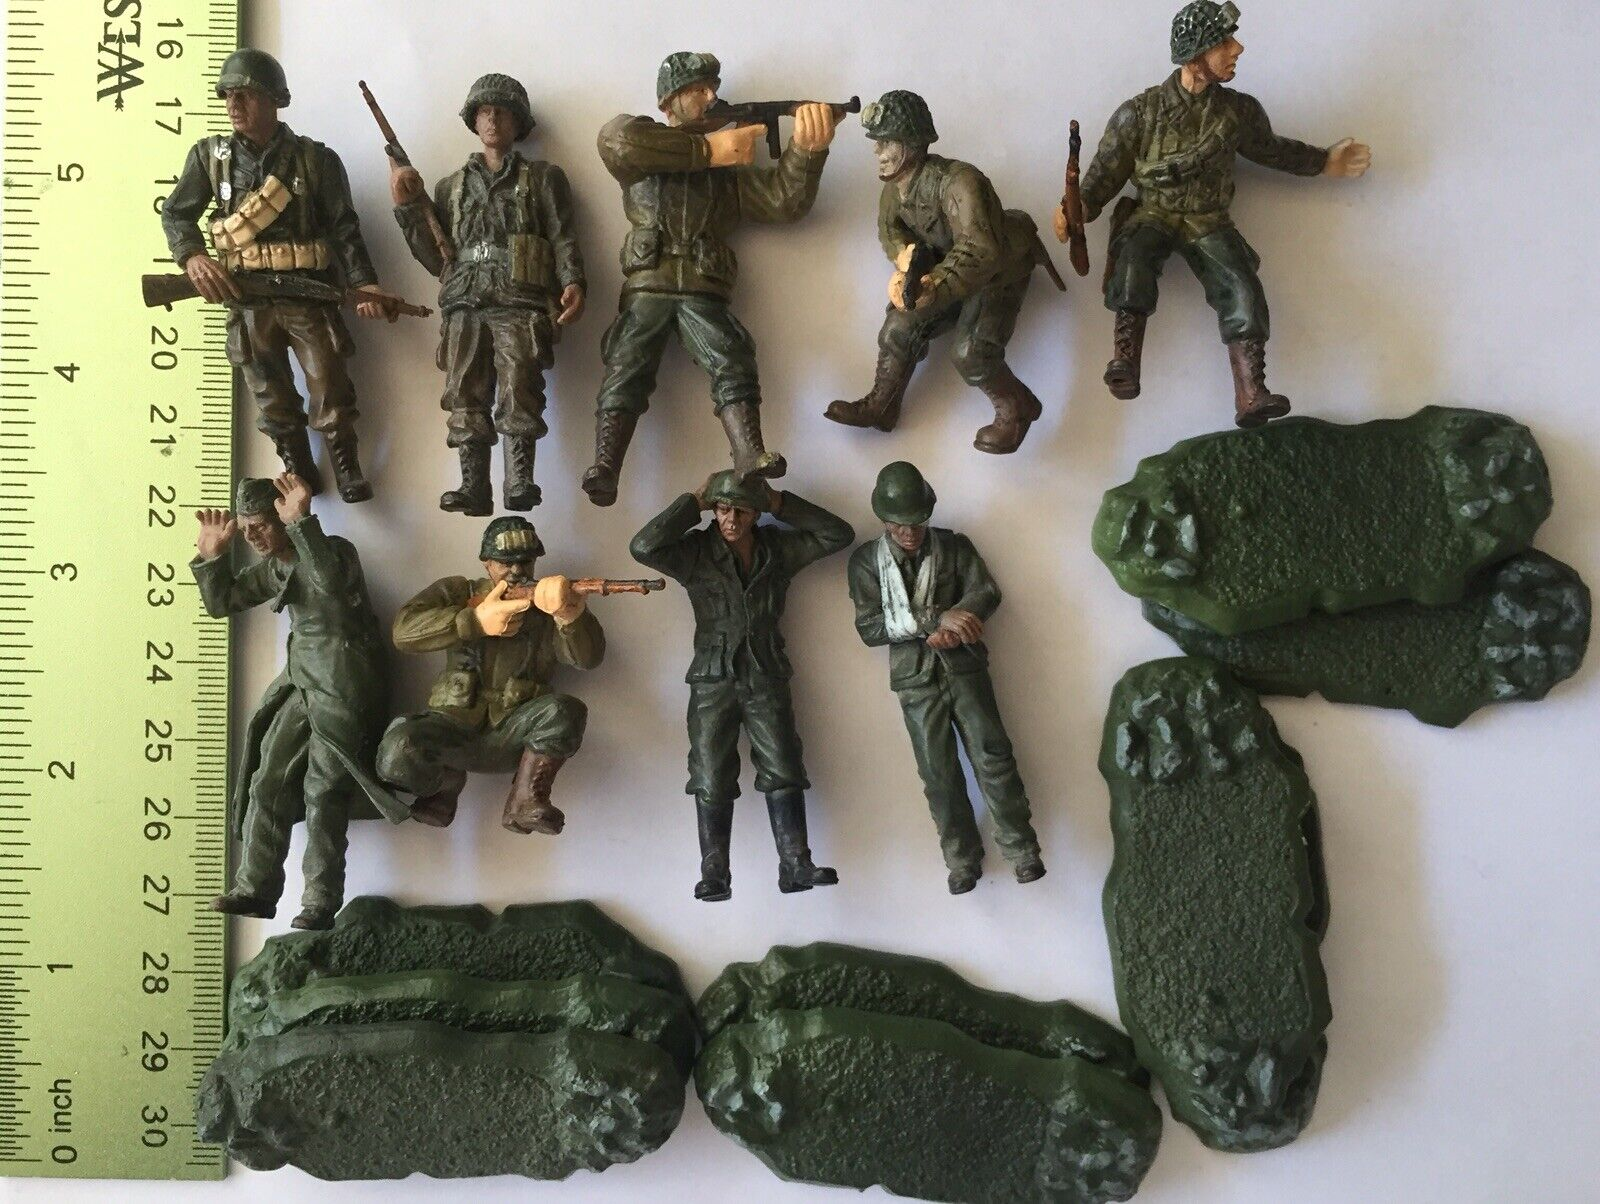 Lot Of 9 1 32 Unimax Forces of Valor Military DiD U.S. German Soldiers Figures